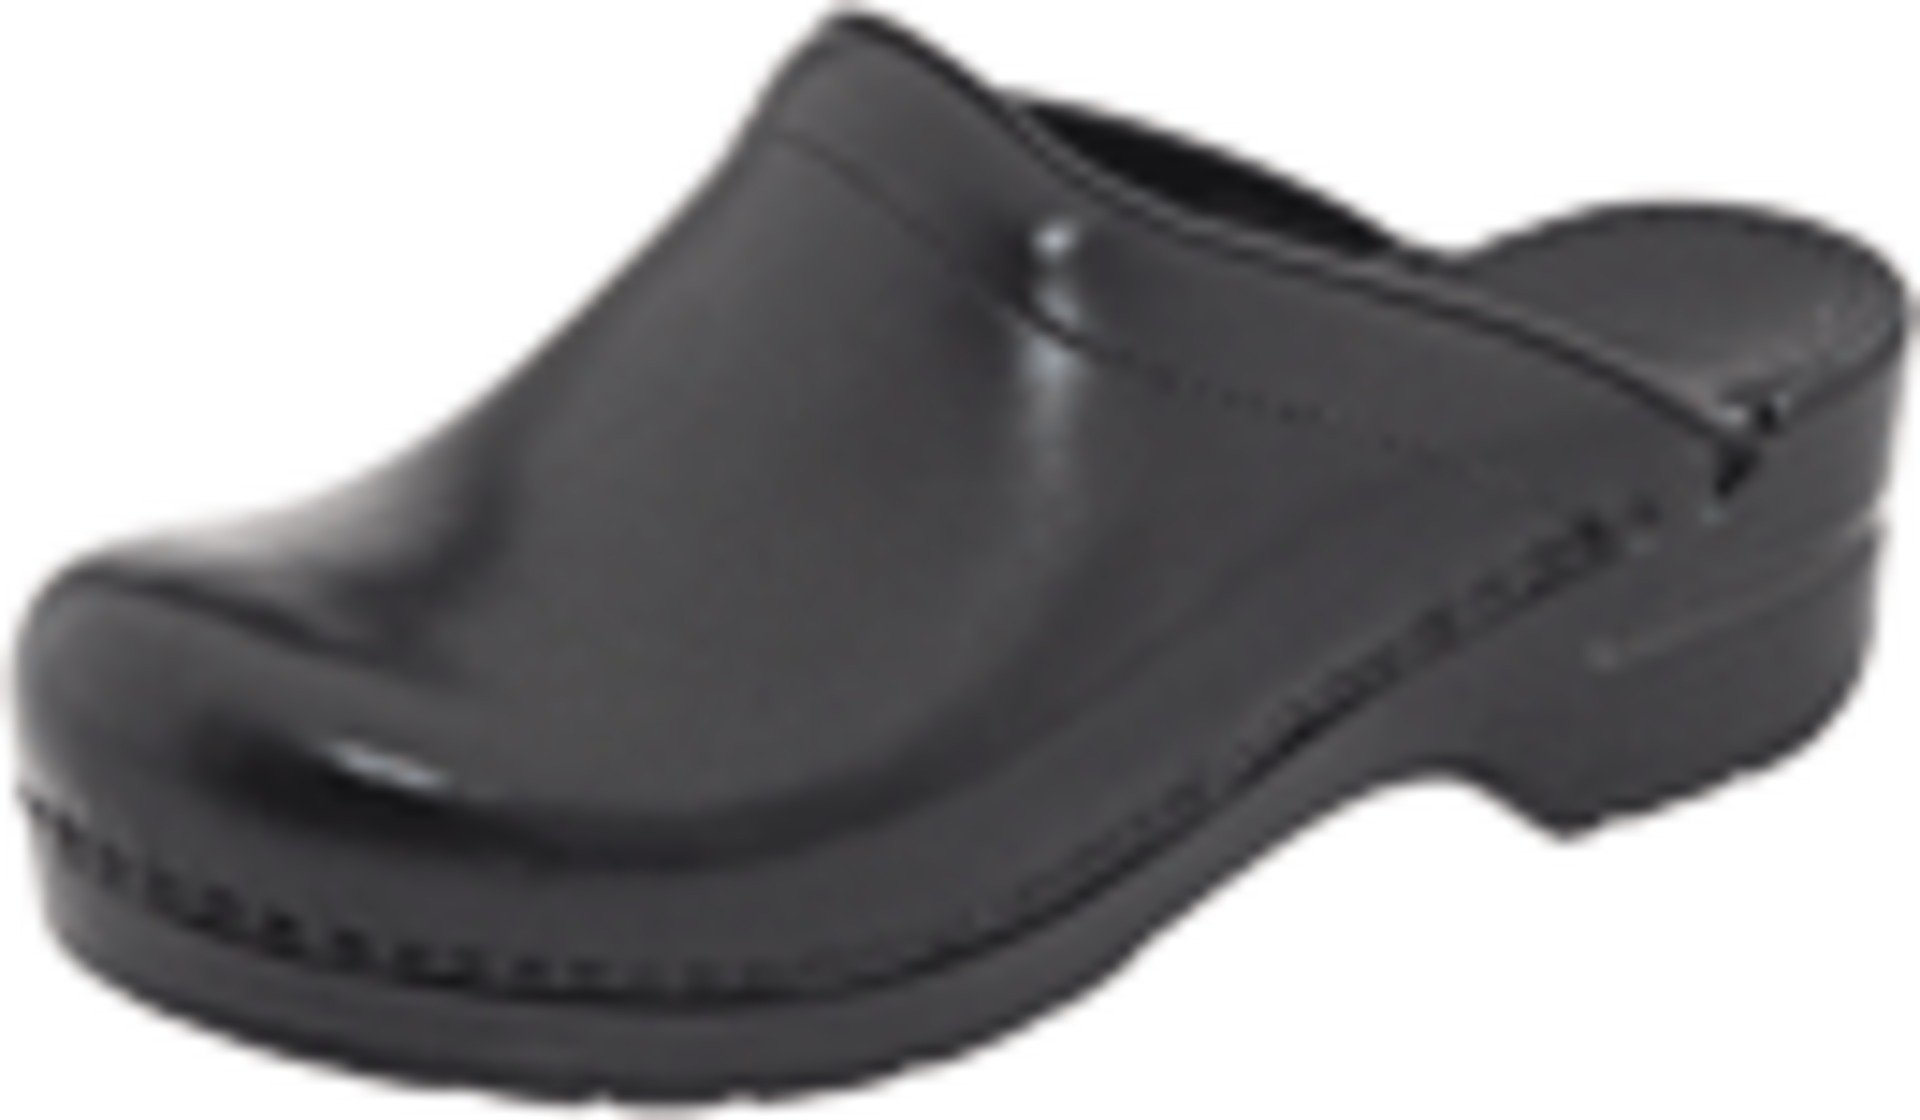 Dansko Women's Sonja Black Cabrio Clog/Mule 35 (US Women's 4.5-5) Regular by Dansko